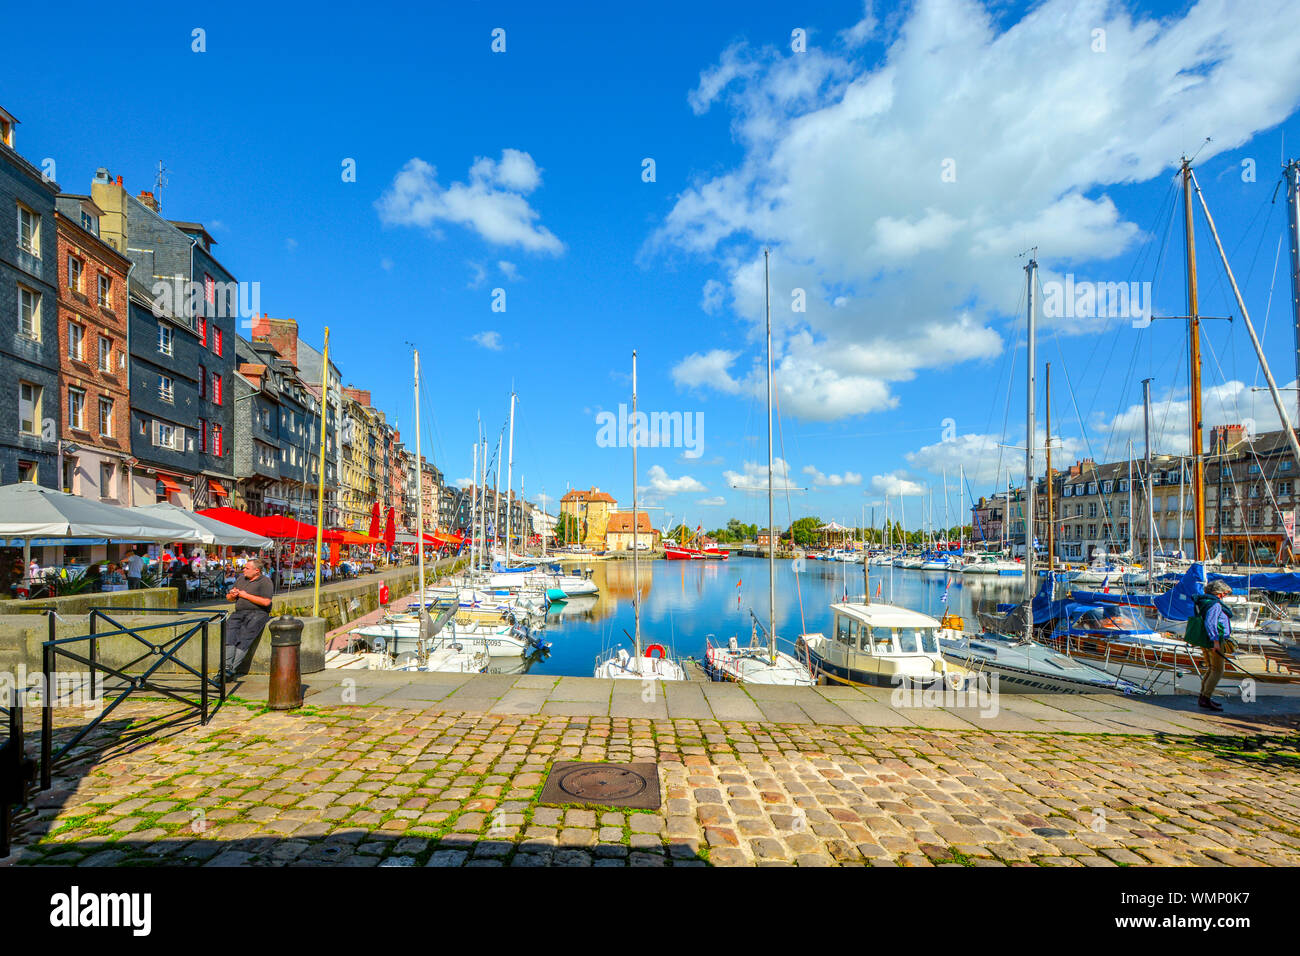 The picturesque fishing village on the Normandy coast of France, Honfleur, with boats in the harbour and tourists enjoying the sidewalk cafes Stock Photo